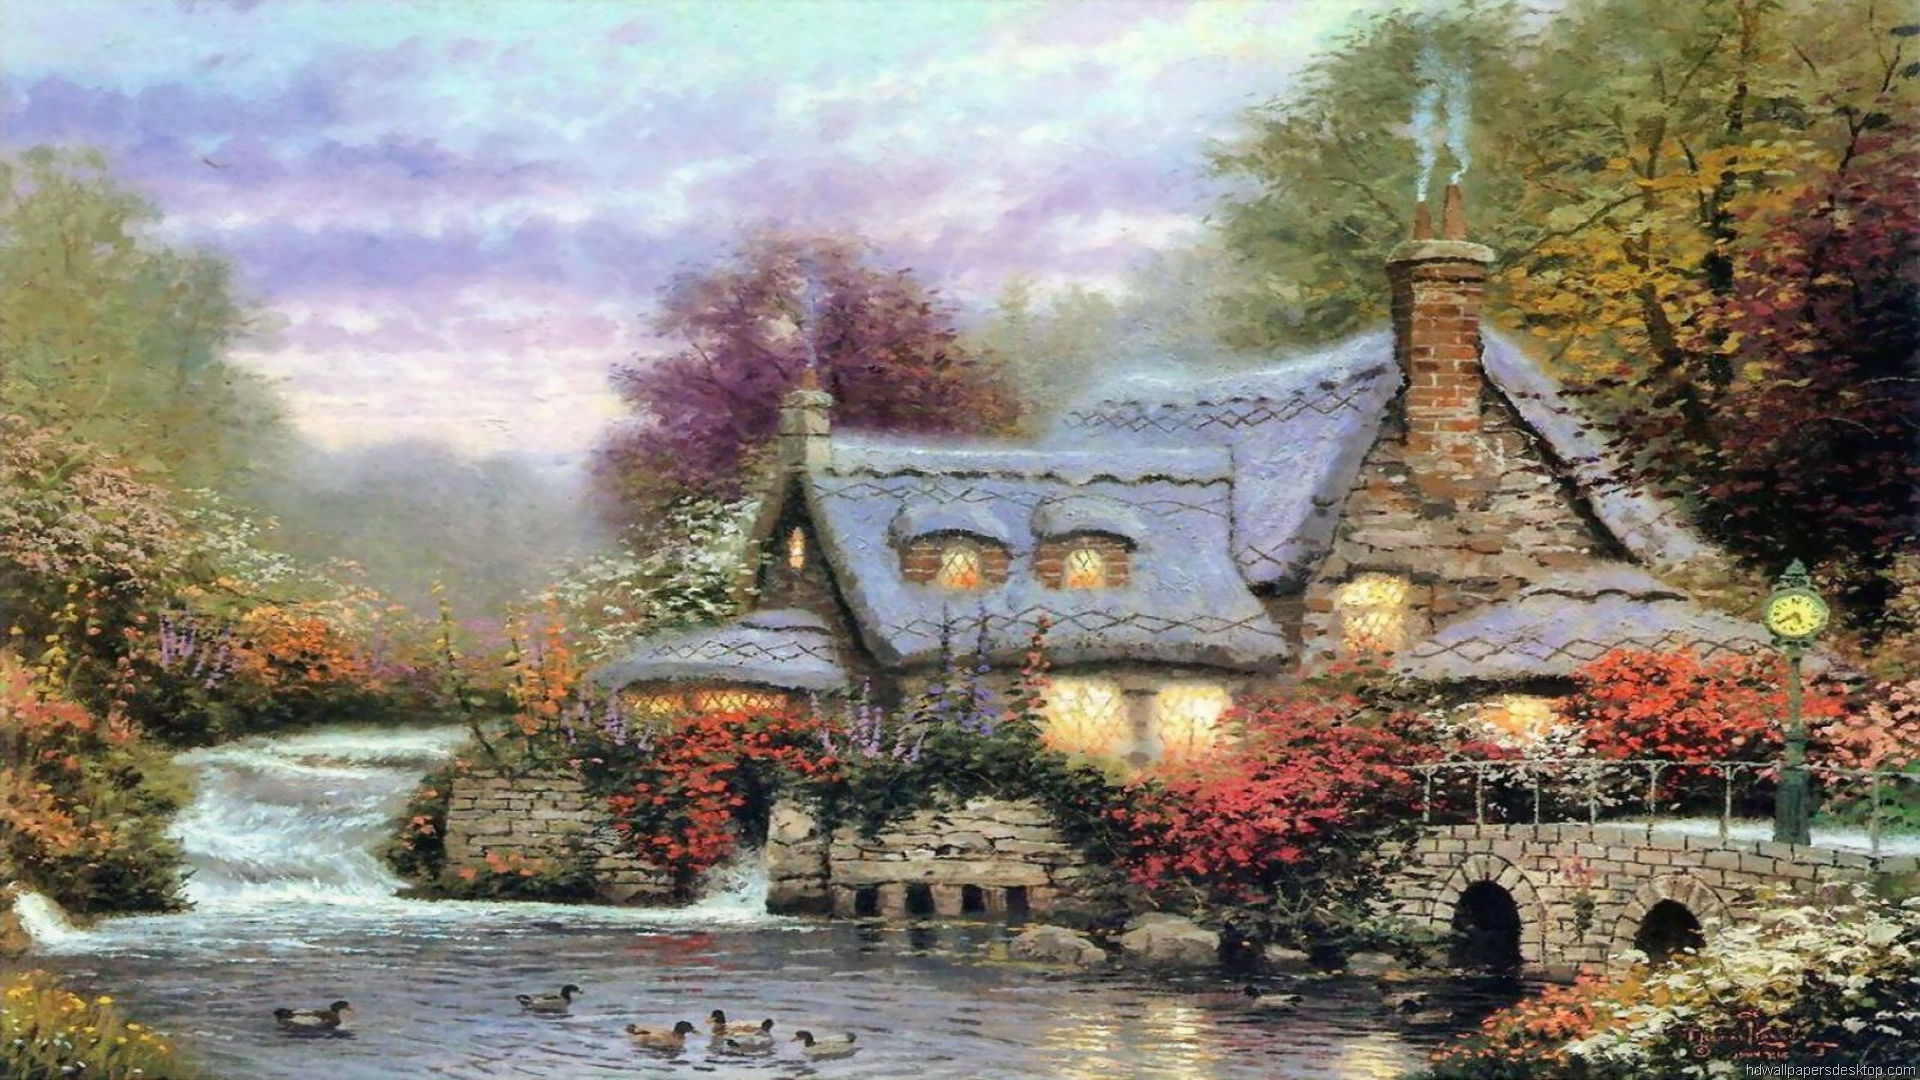 Thomas Kinkade Wallpaper Paintings Art HD Desktop Thomas Kinkade 1920x1080